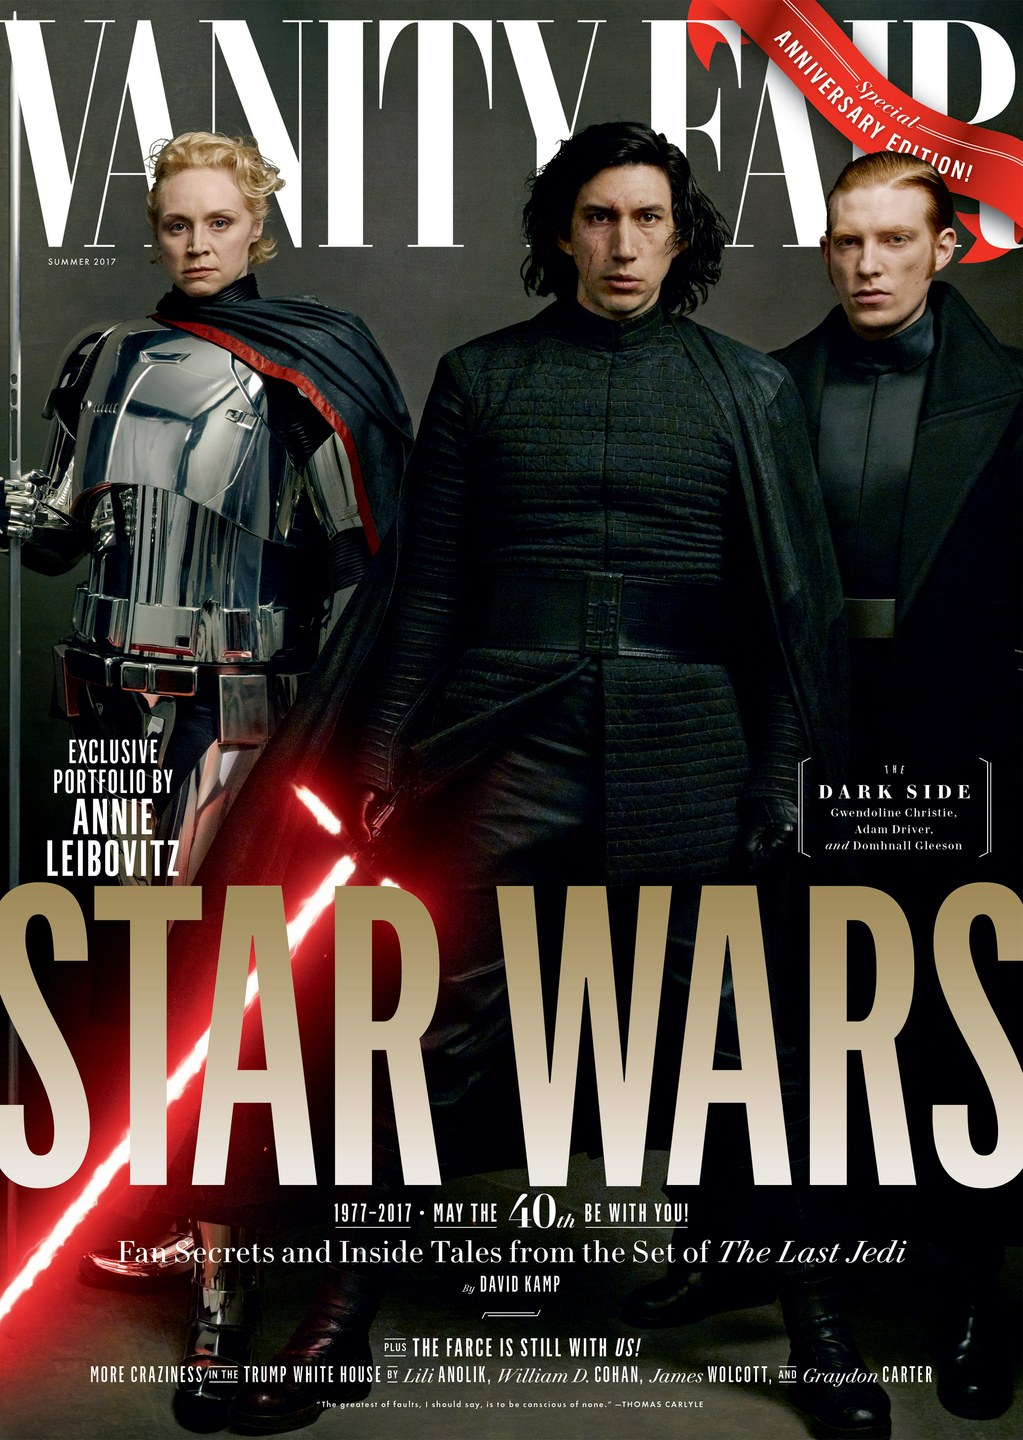 Star Wars: The Last Jedi Cast Feature On Four Annie Leibovitz Vanity Fair Covers